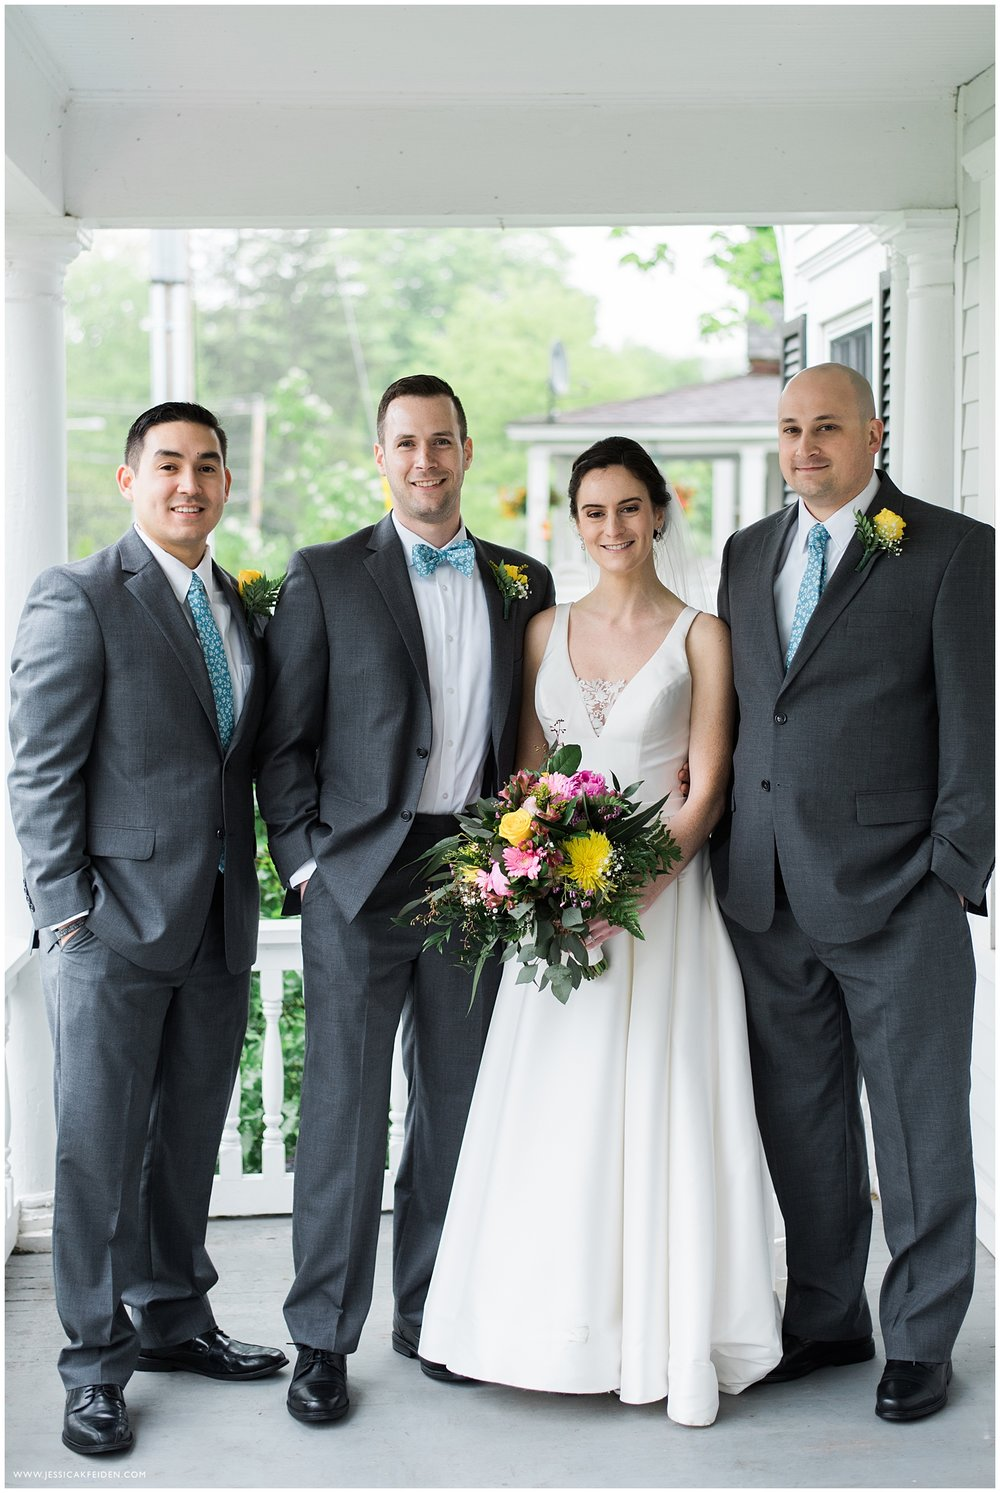 Jessica K Feiden Photography_Publick House Inn Wedding Photographer_0053.jpg